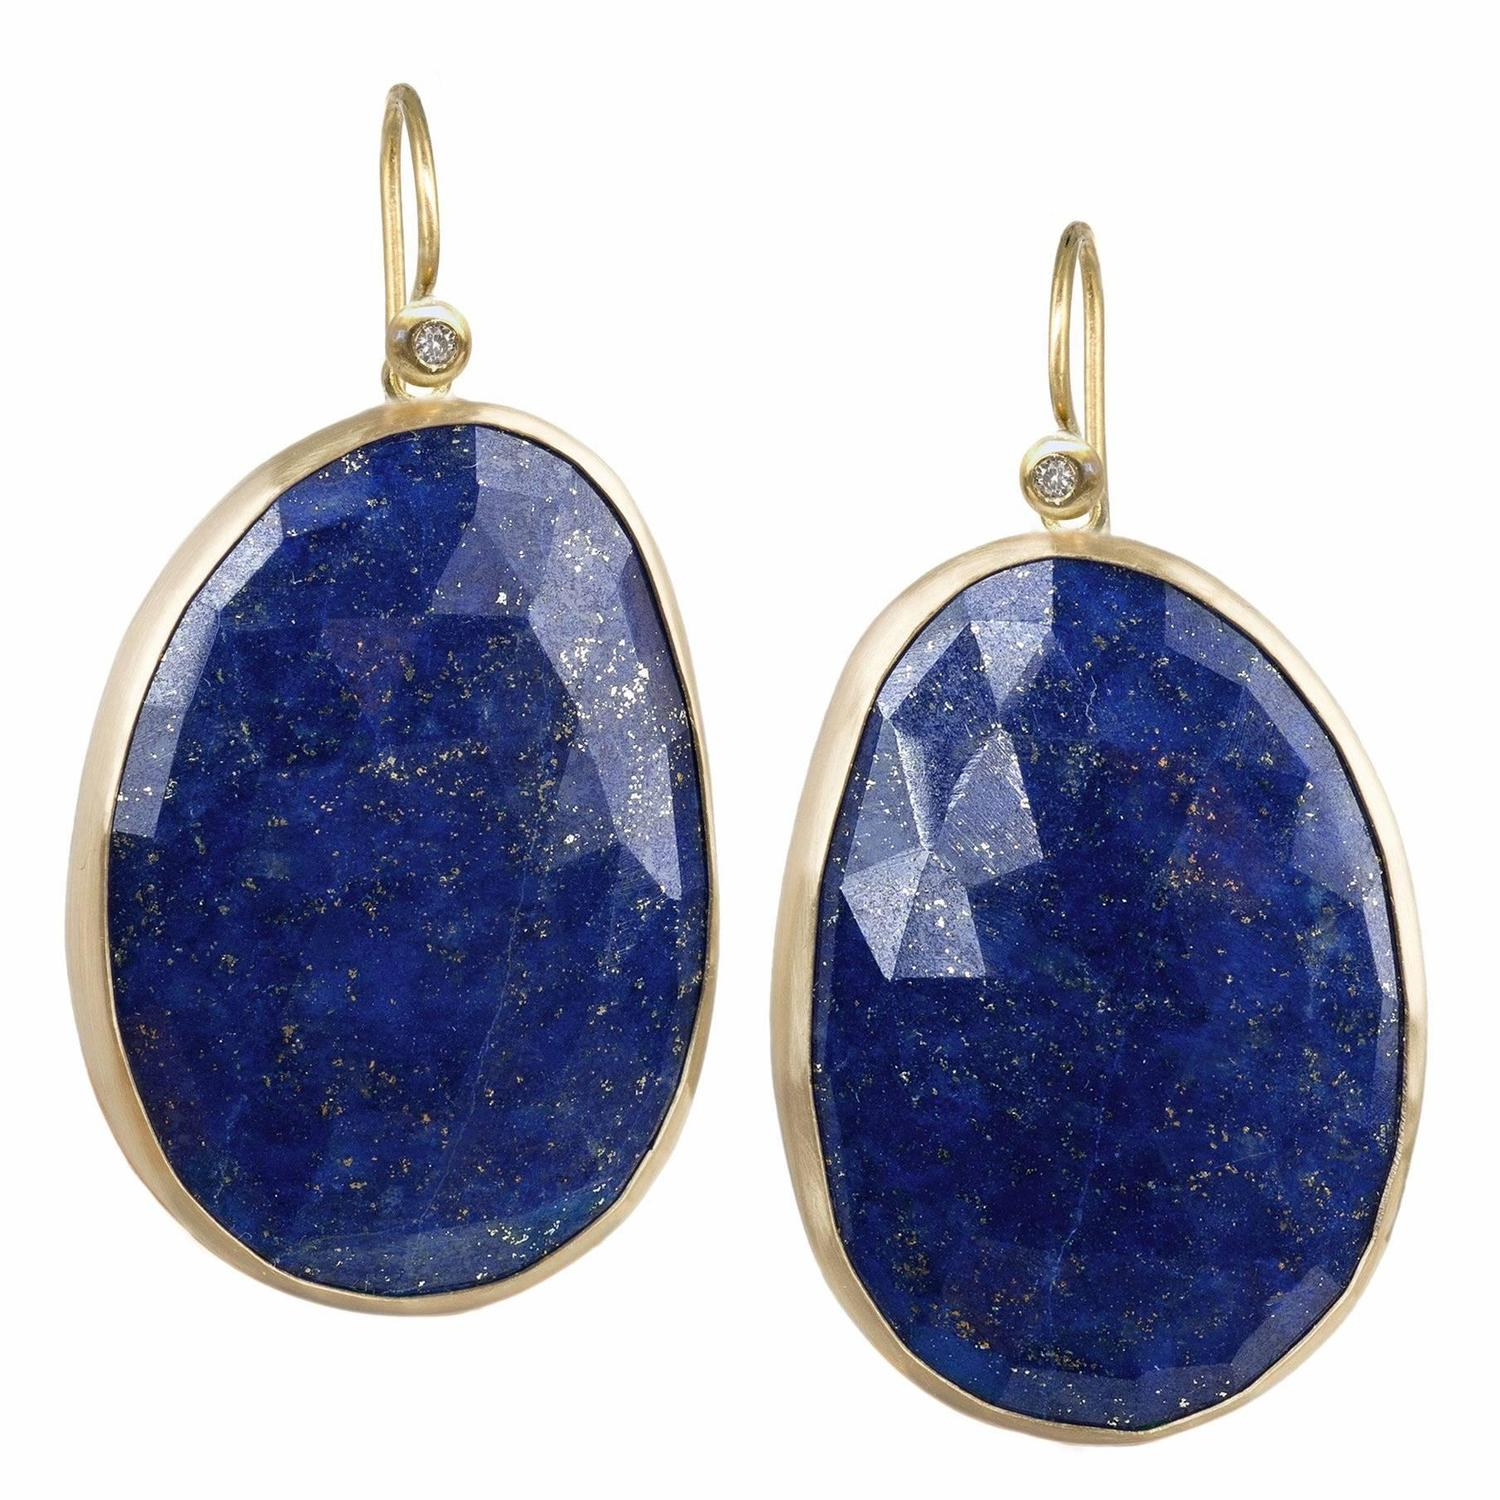 whittenlapisearring accessories p whitten product lapis furniture list earrings pch